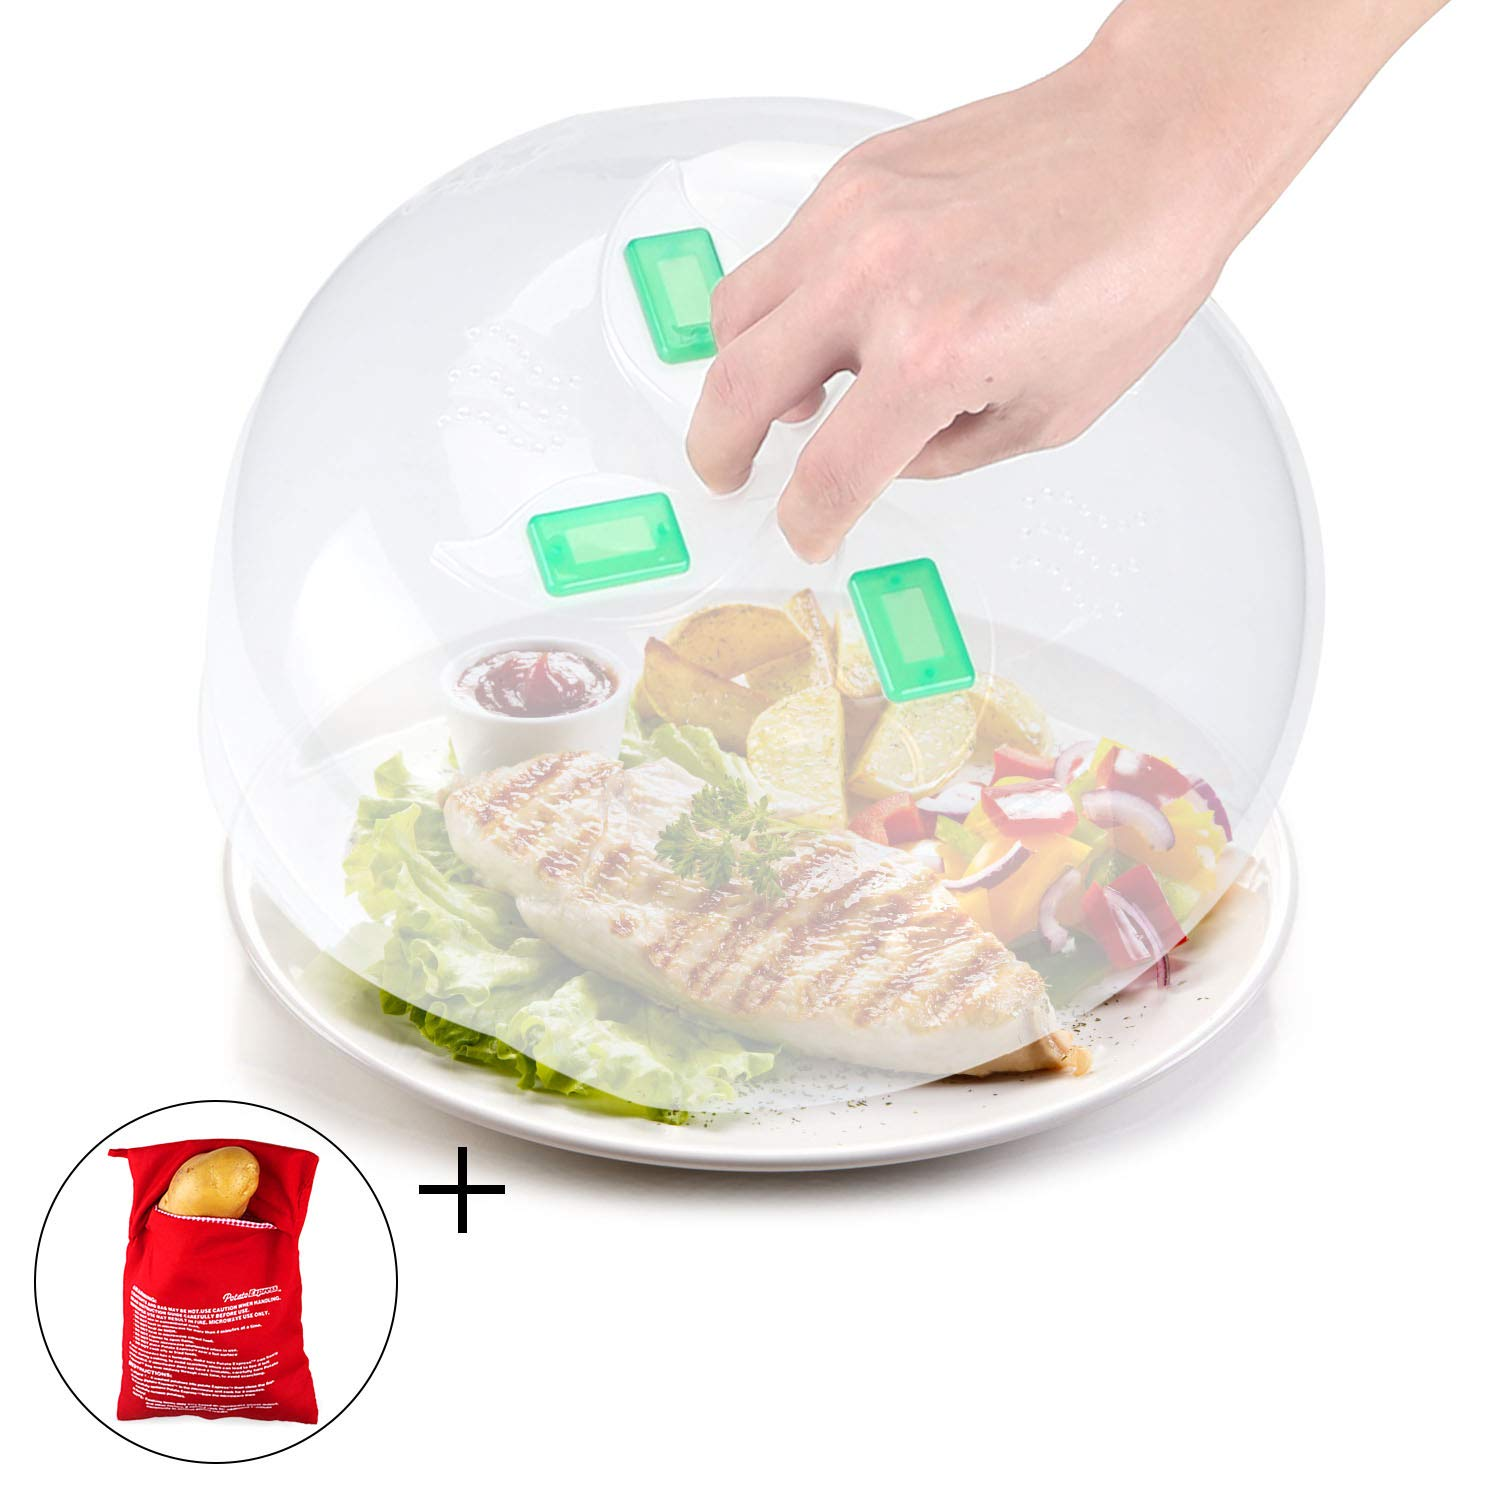 Microwave Plate Cover Microwave Food Cover Anti-Splatter Lid with Steam Vents 11.5 Inch - No Magnetic Function + Microwave Potato Cooker